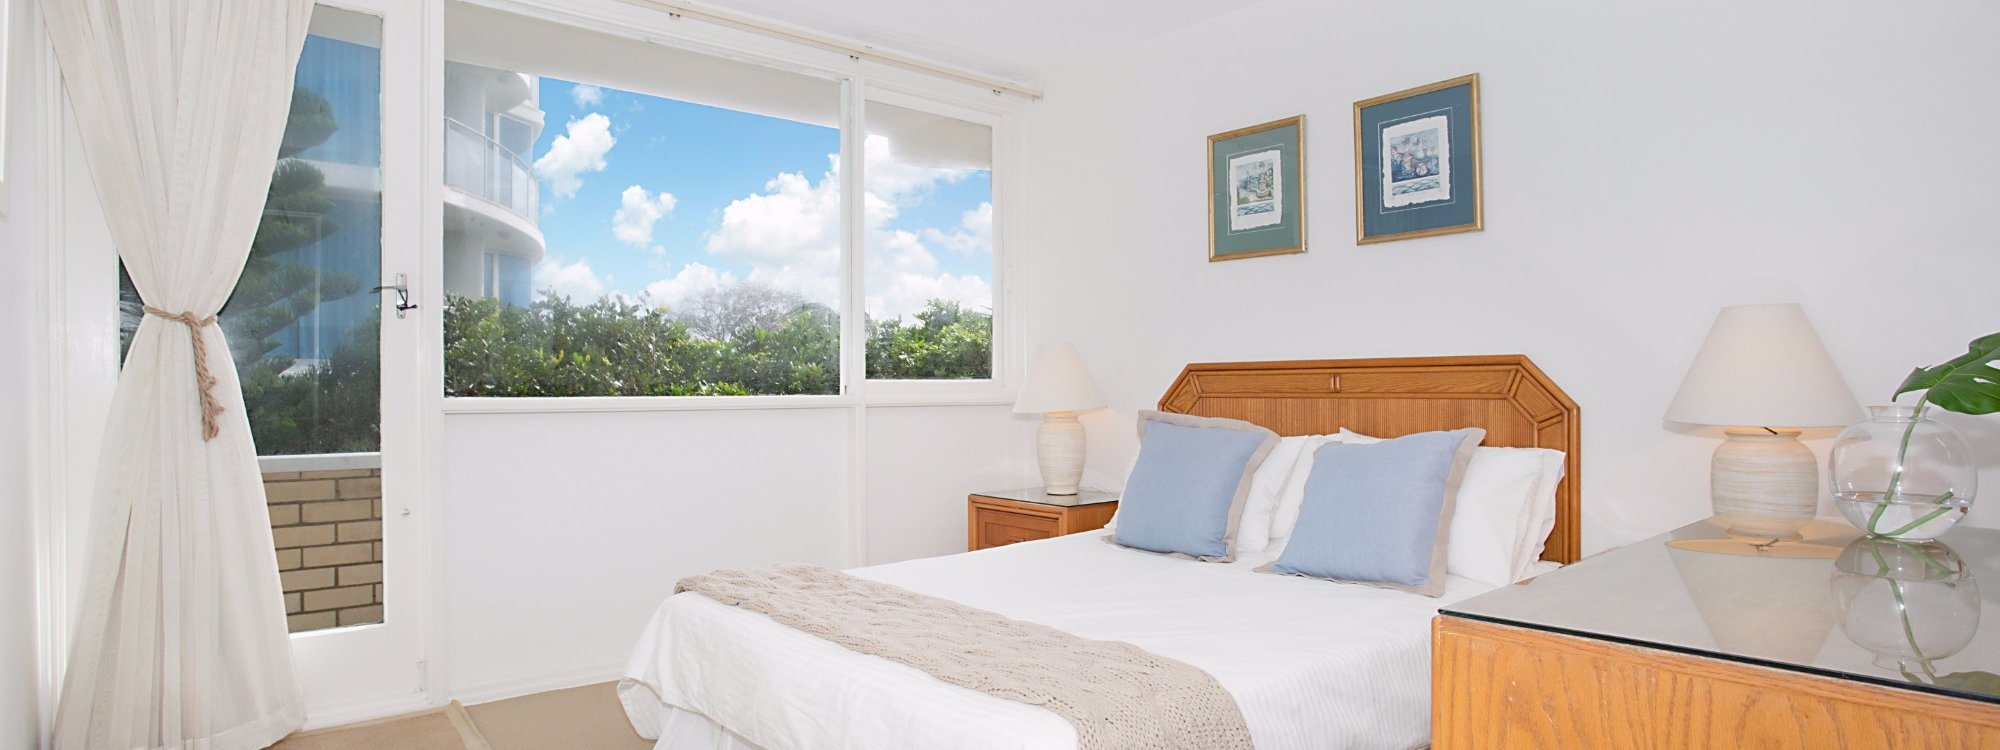 King Tide - Broadbeach - Bedroom 3